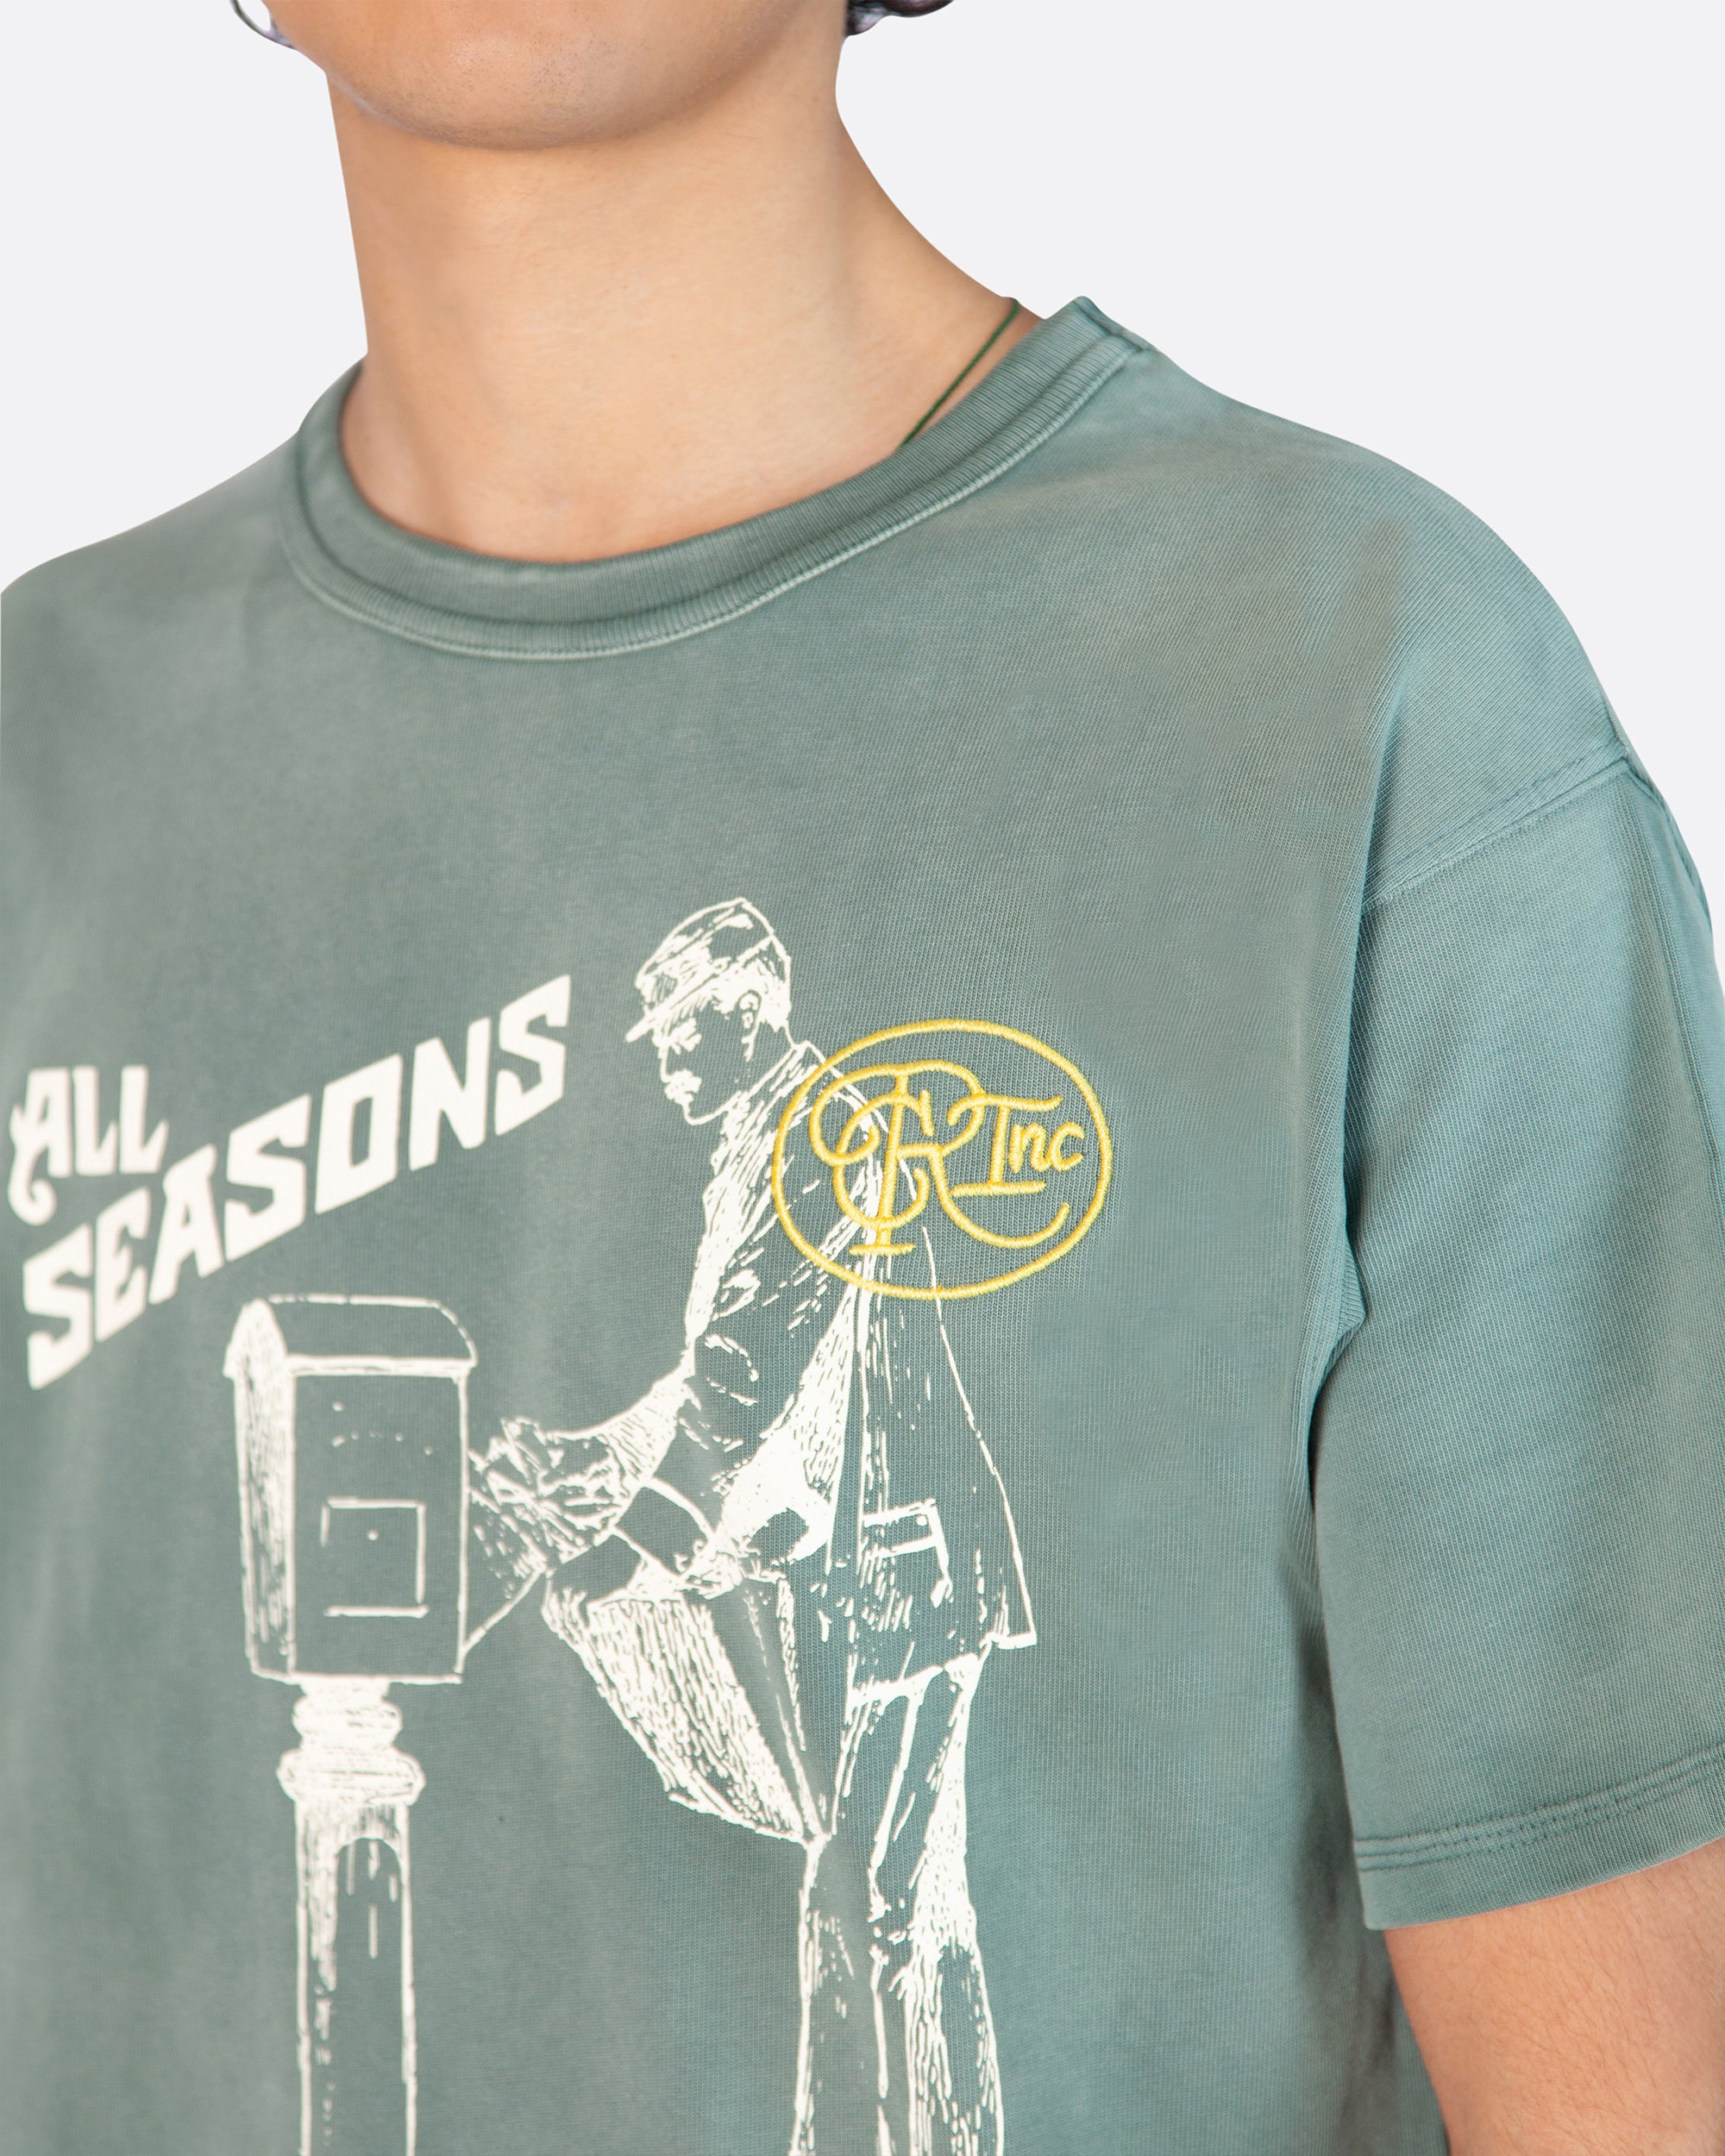 All Seasons Aged Tee Shirt in Green